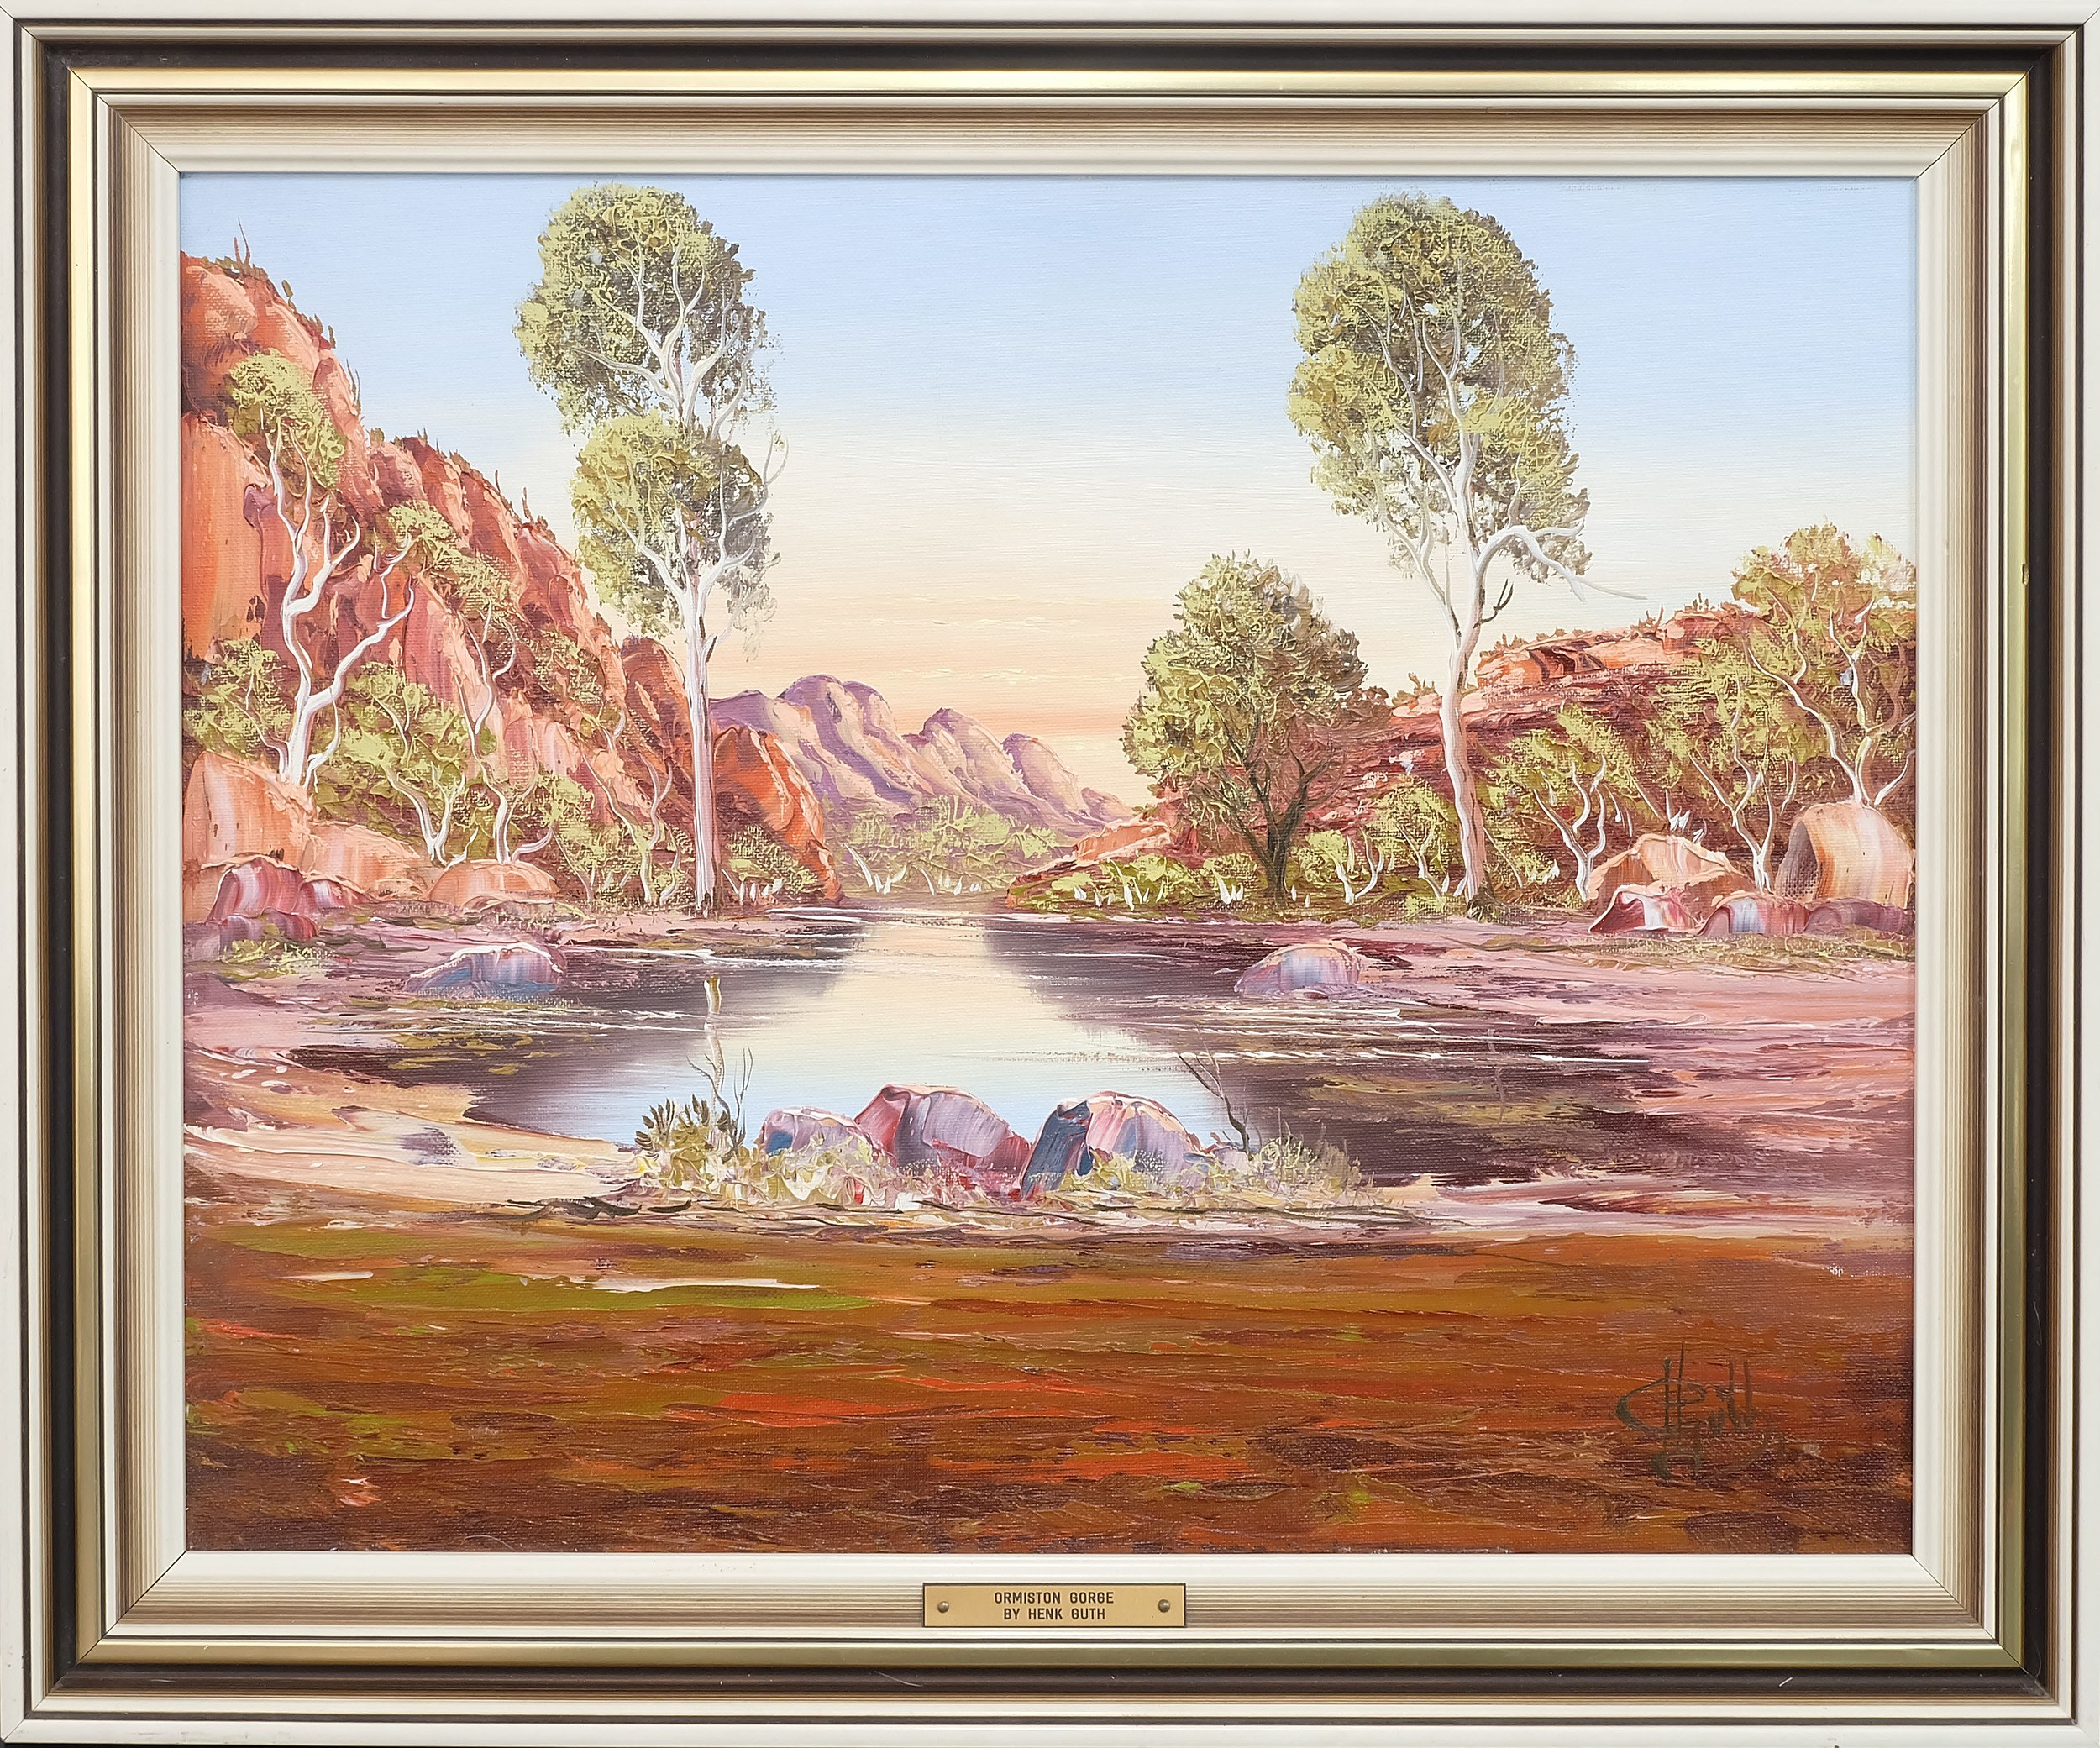 'Henk Guth (1921-2003) Ormiston Gorge Oil on Board'